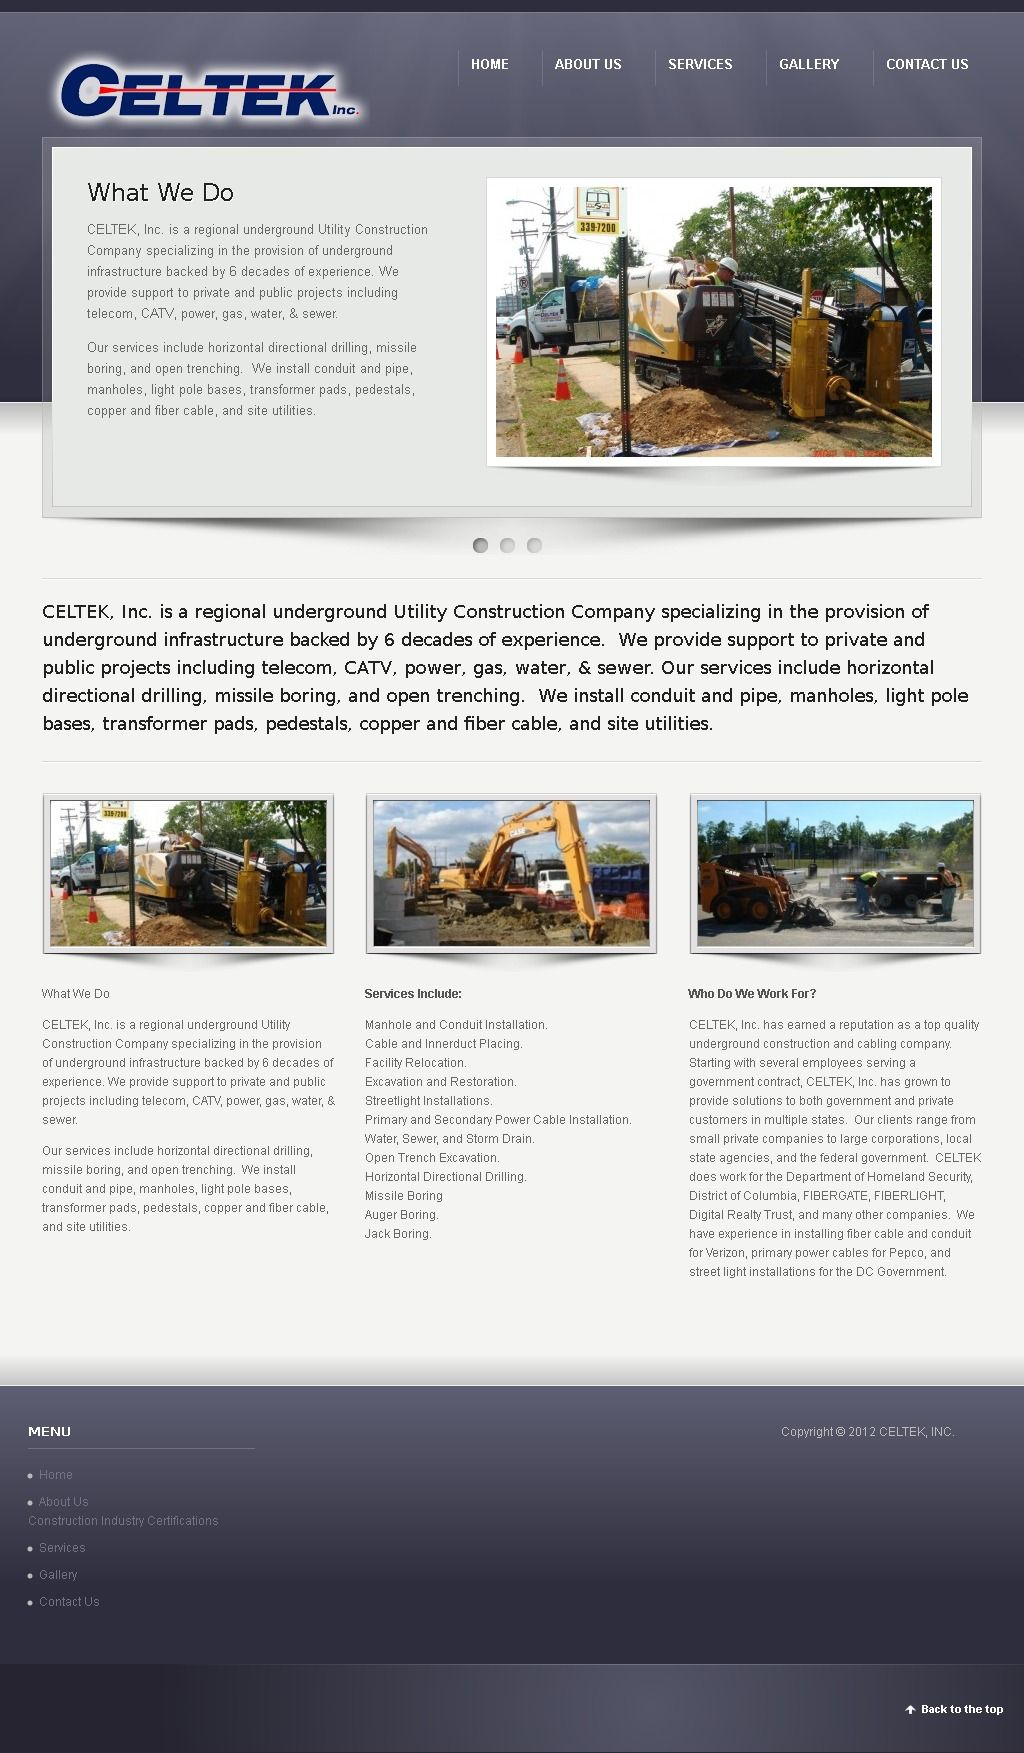 Celtek. Delivers underground utility construction services ...